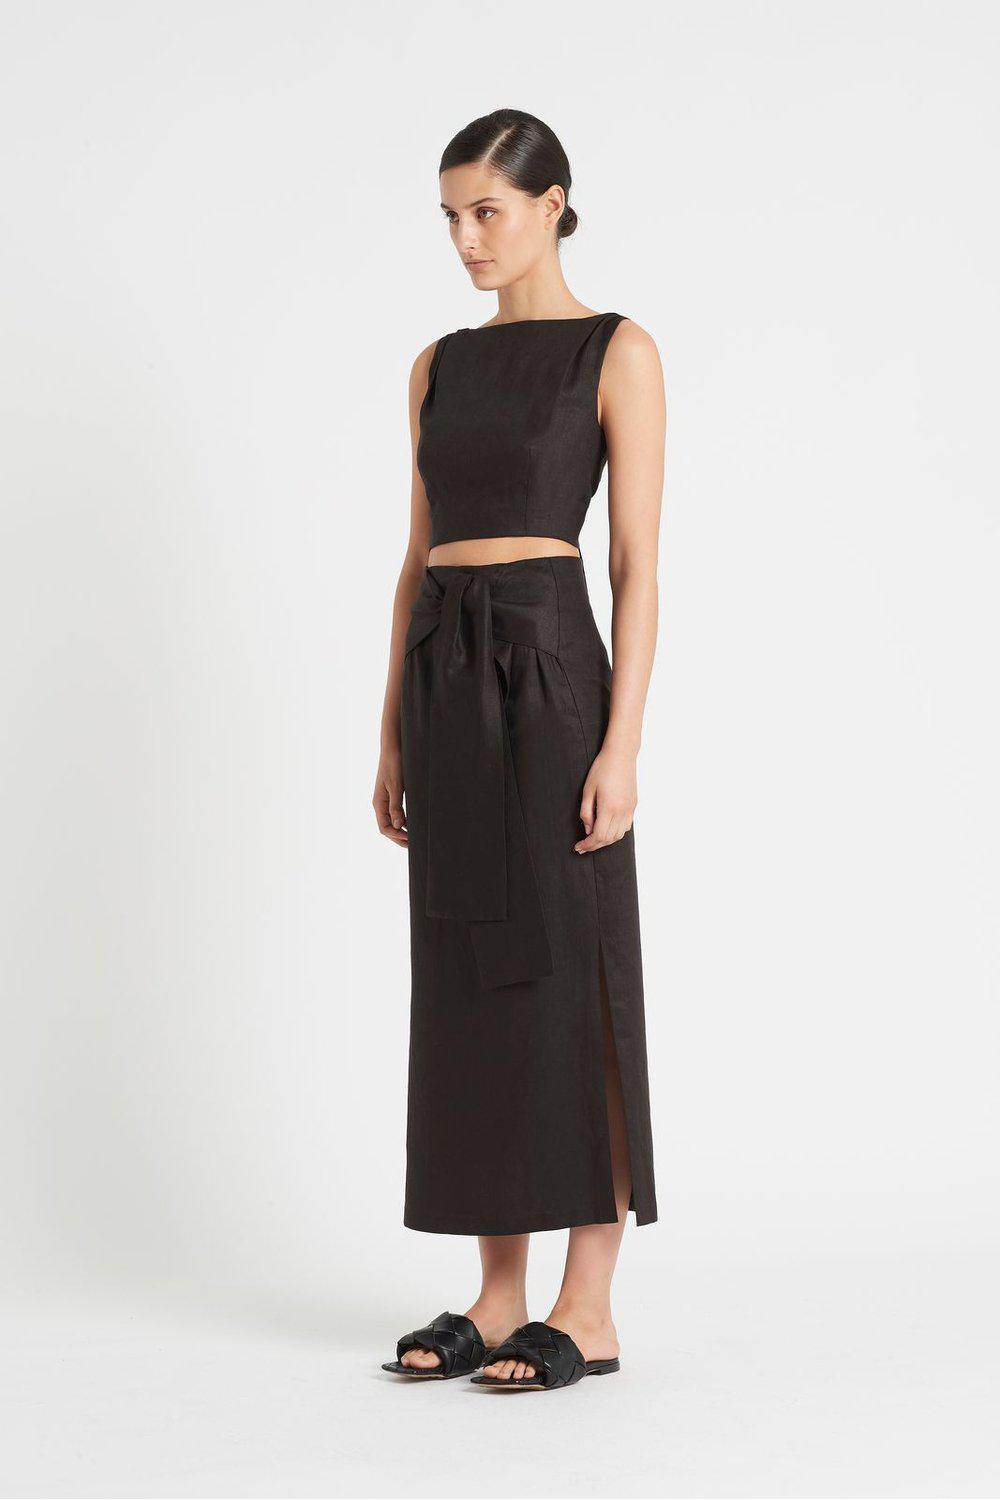 AMBROISE TIE MIDI SKIRT / Black | SIR | Mad About The Boy